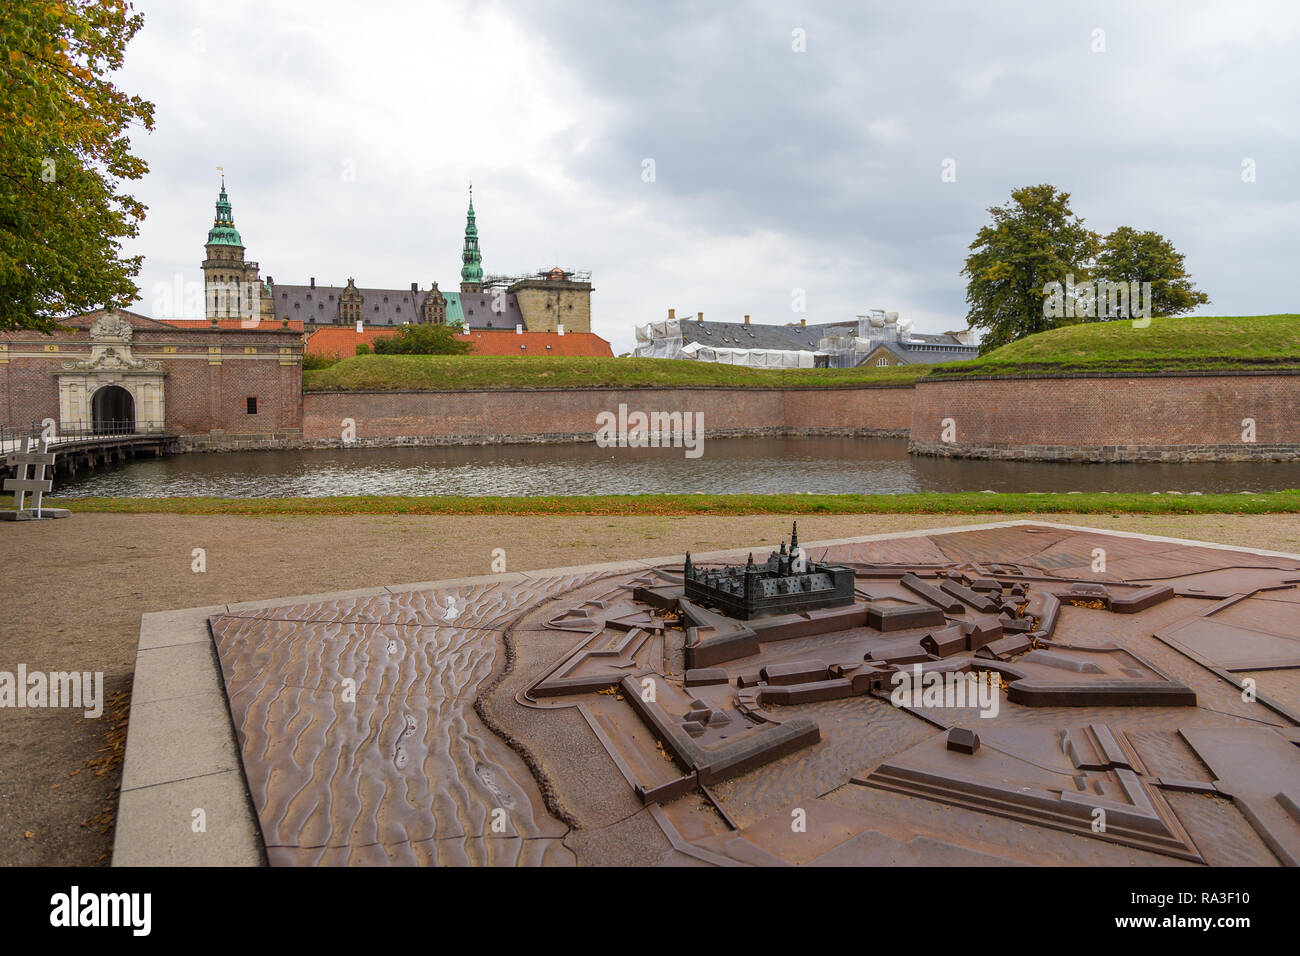 Helsingor, Denmark- 30 August 2014: View of Kronborg palace, defensive walls and model. Kronborg Palace, most important Renaissance palace in Northern - Stock Image